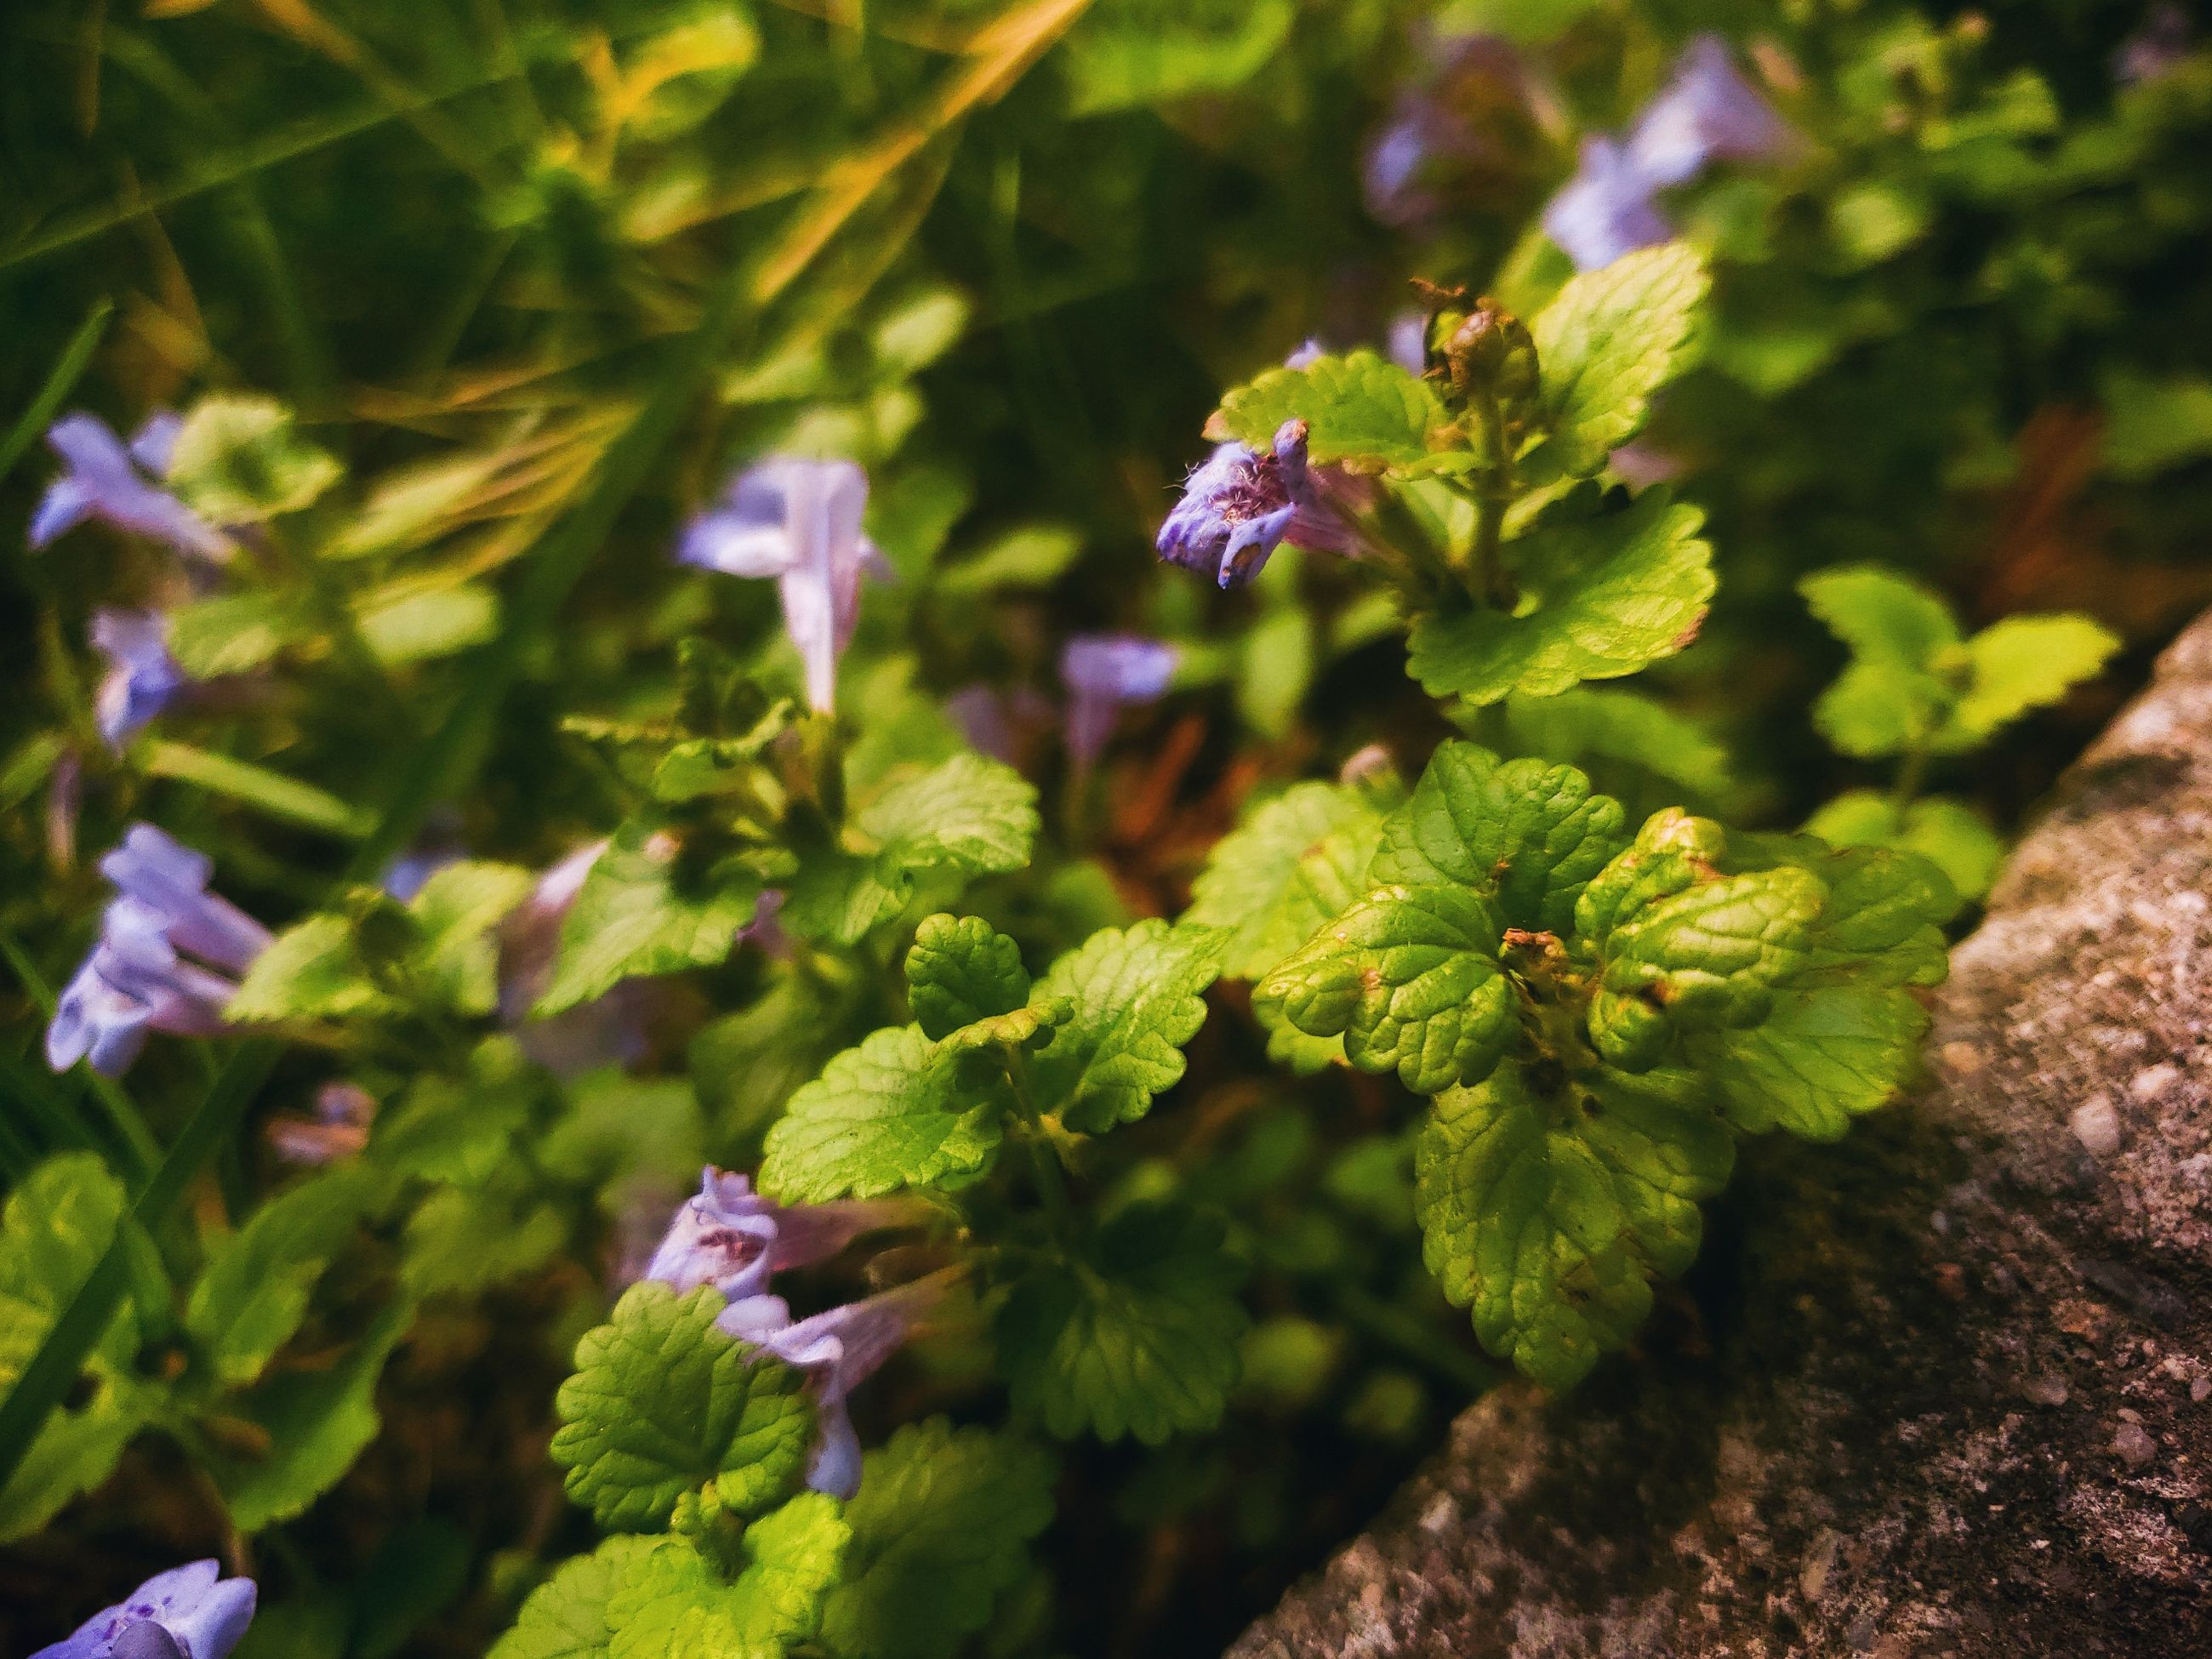 growth, plant, beauty in nature, close-up, nature, no people, selective focus, day, green color, fragility, vulnerability, leaf, plant part, focus on foreground, freshness, outdoors, flower, flowering plant, tranquility, purple, flower head